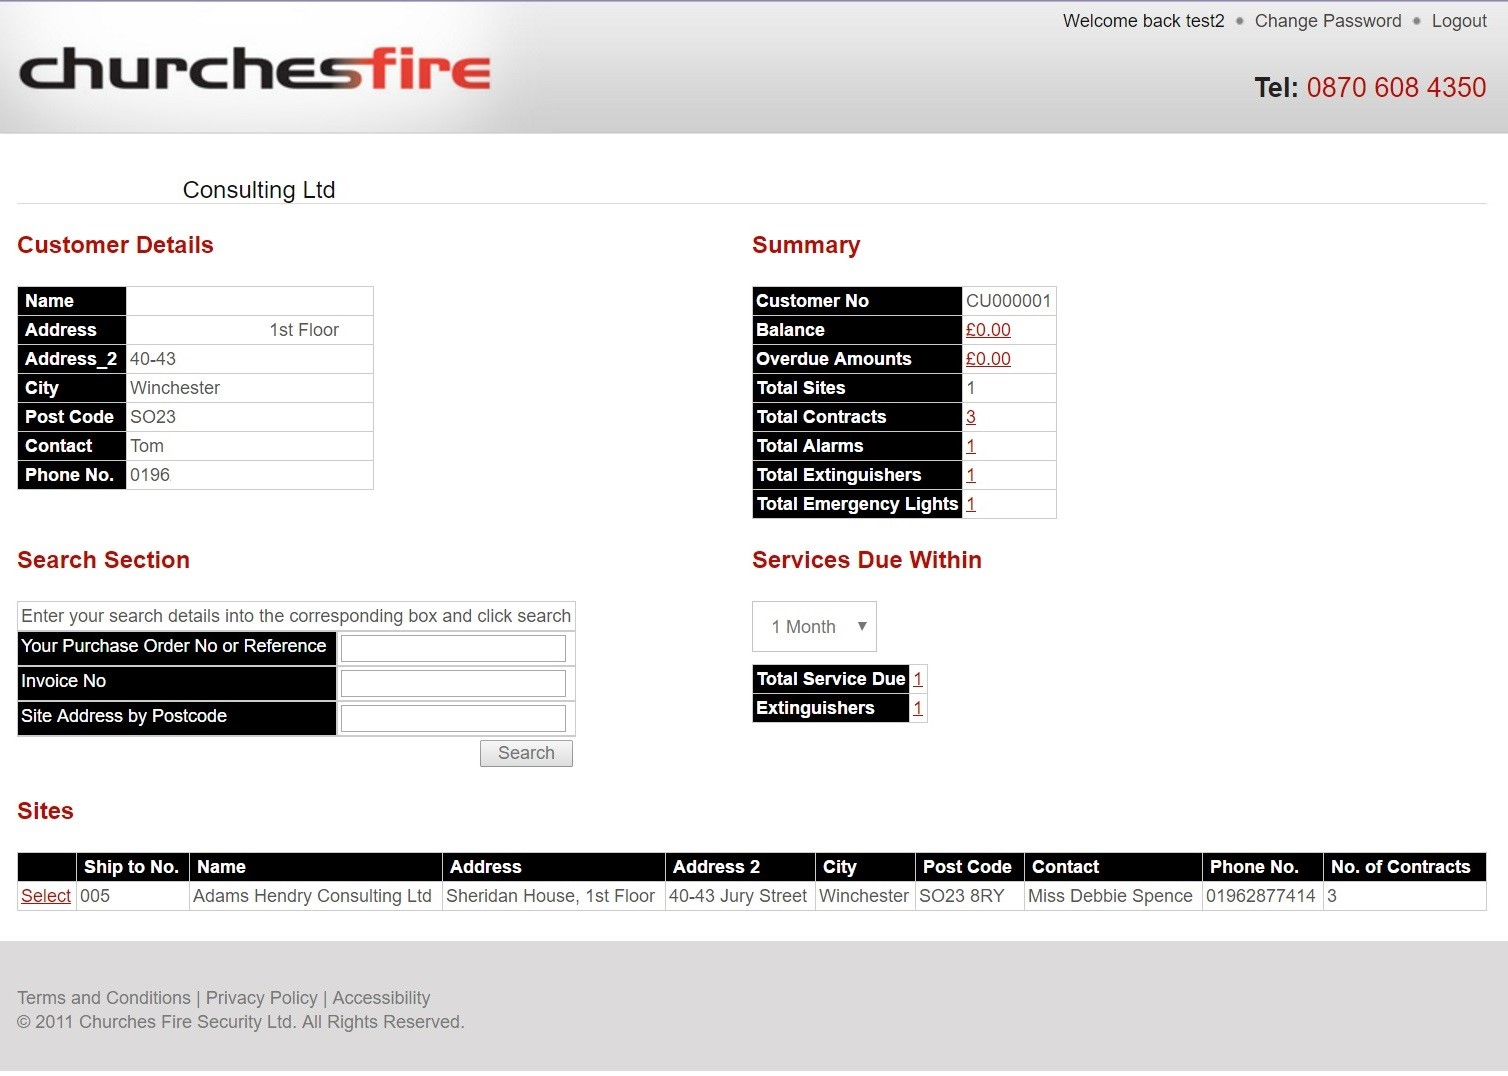 Churches Fire website customer portal developed by Dynamics Consultants